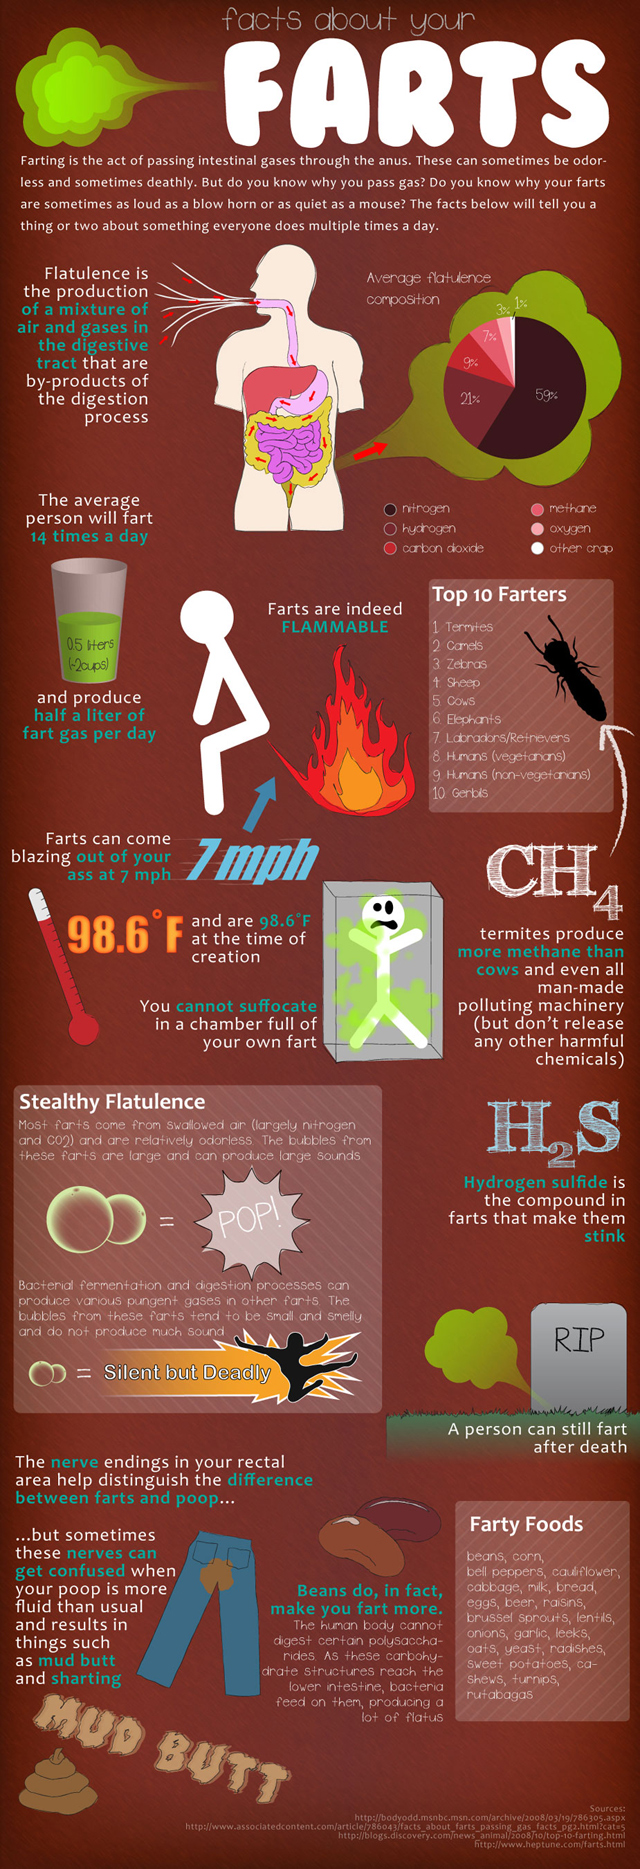 Flatulence Information - Facts About Your Farts